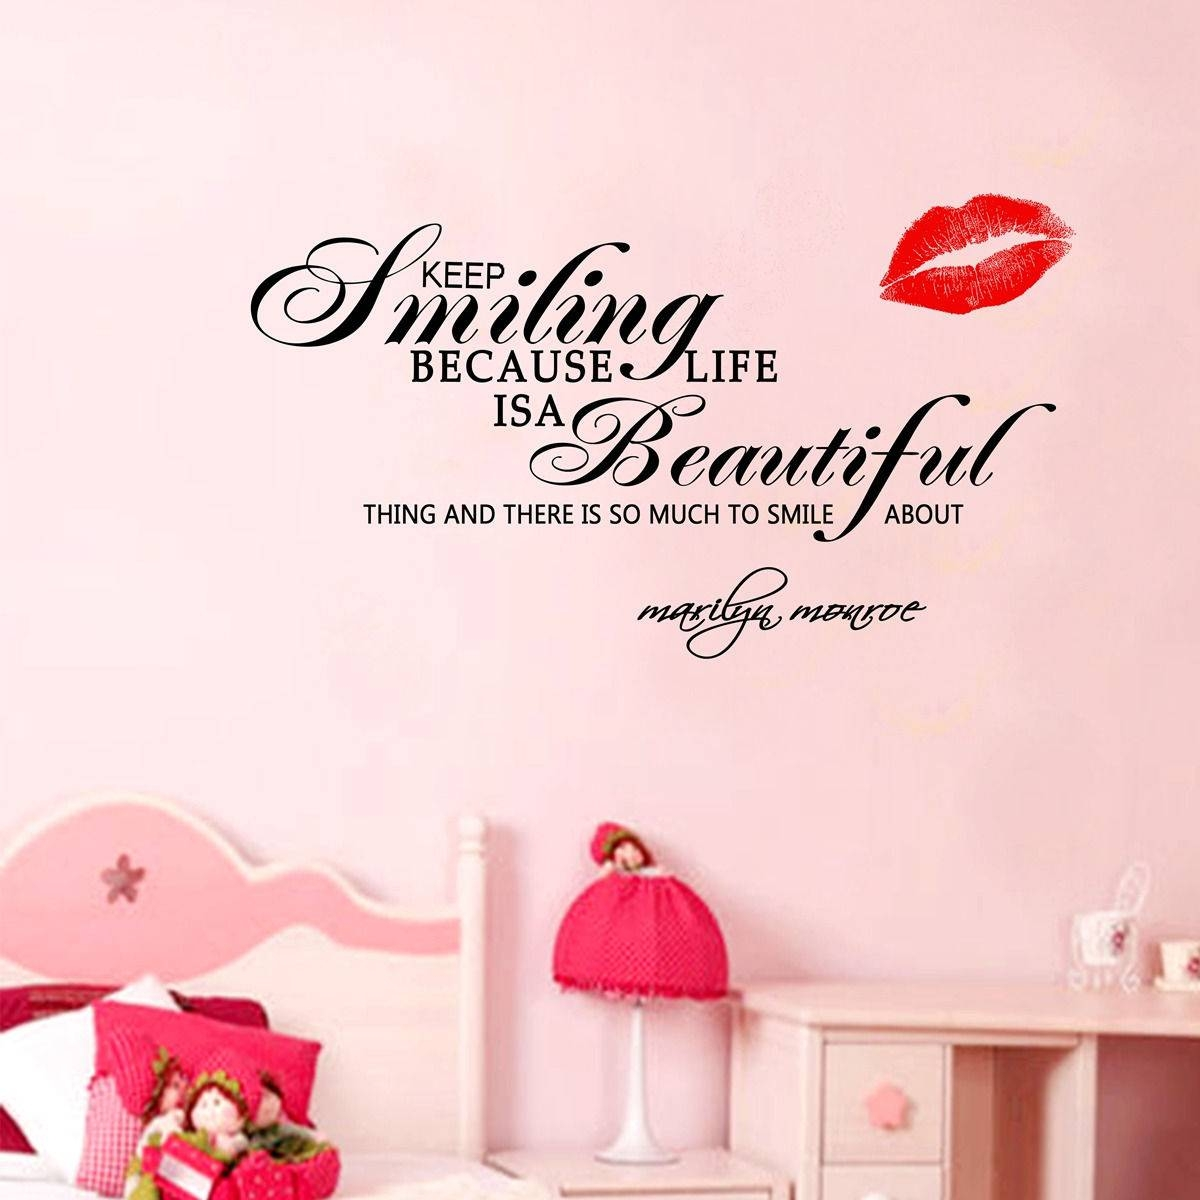 Face Wall Sticker Marilyn Monroe Quote Wall Decal Vinyl Art Within 2018 Marilyn Monroe Wall Art Quotes (View 16 of 25)